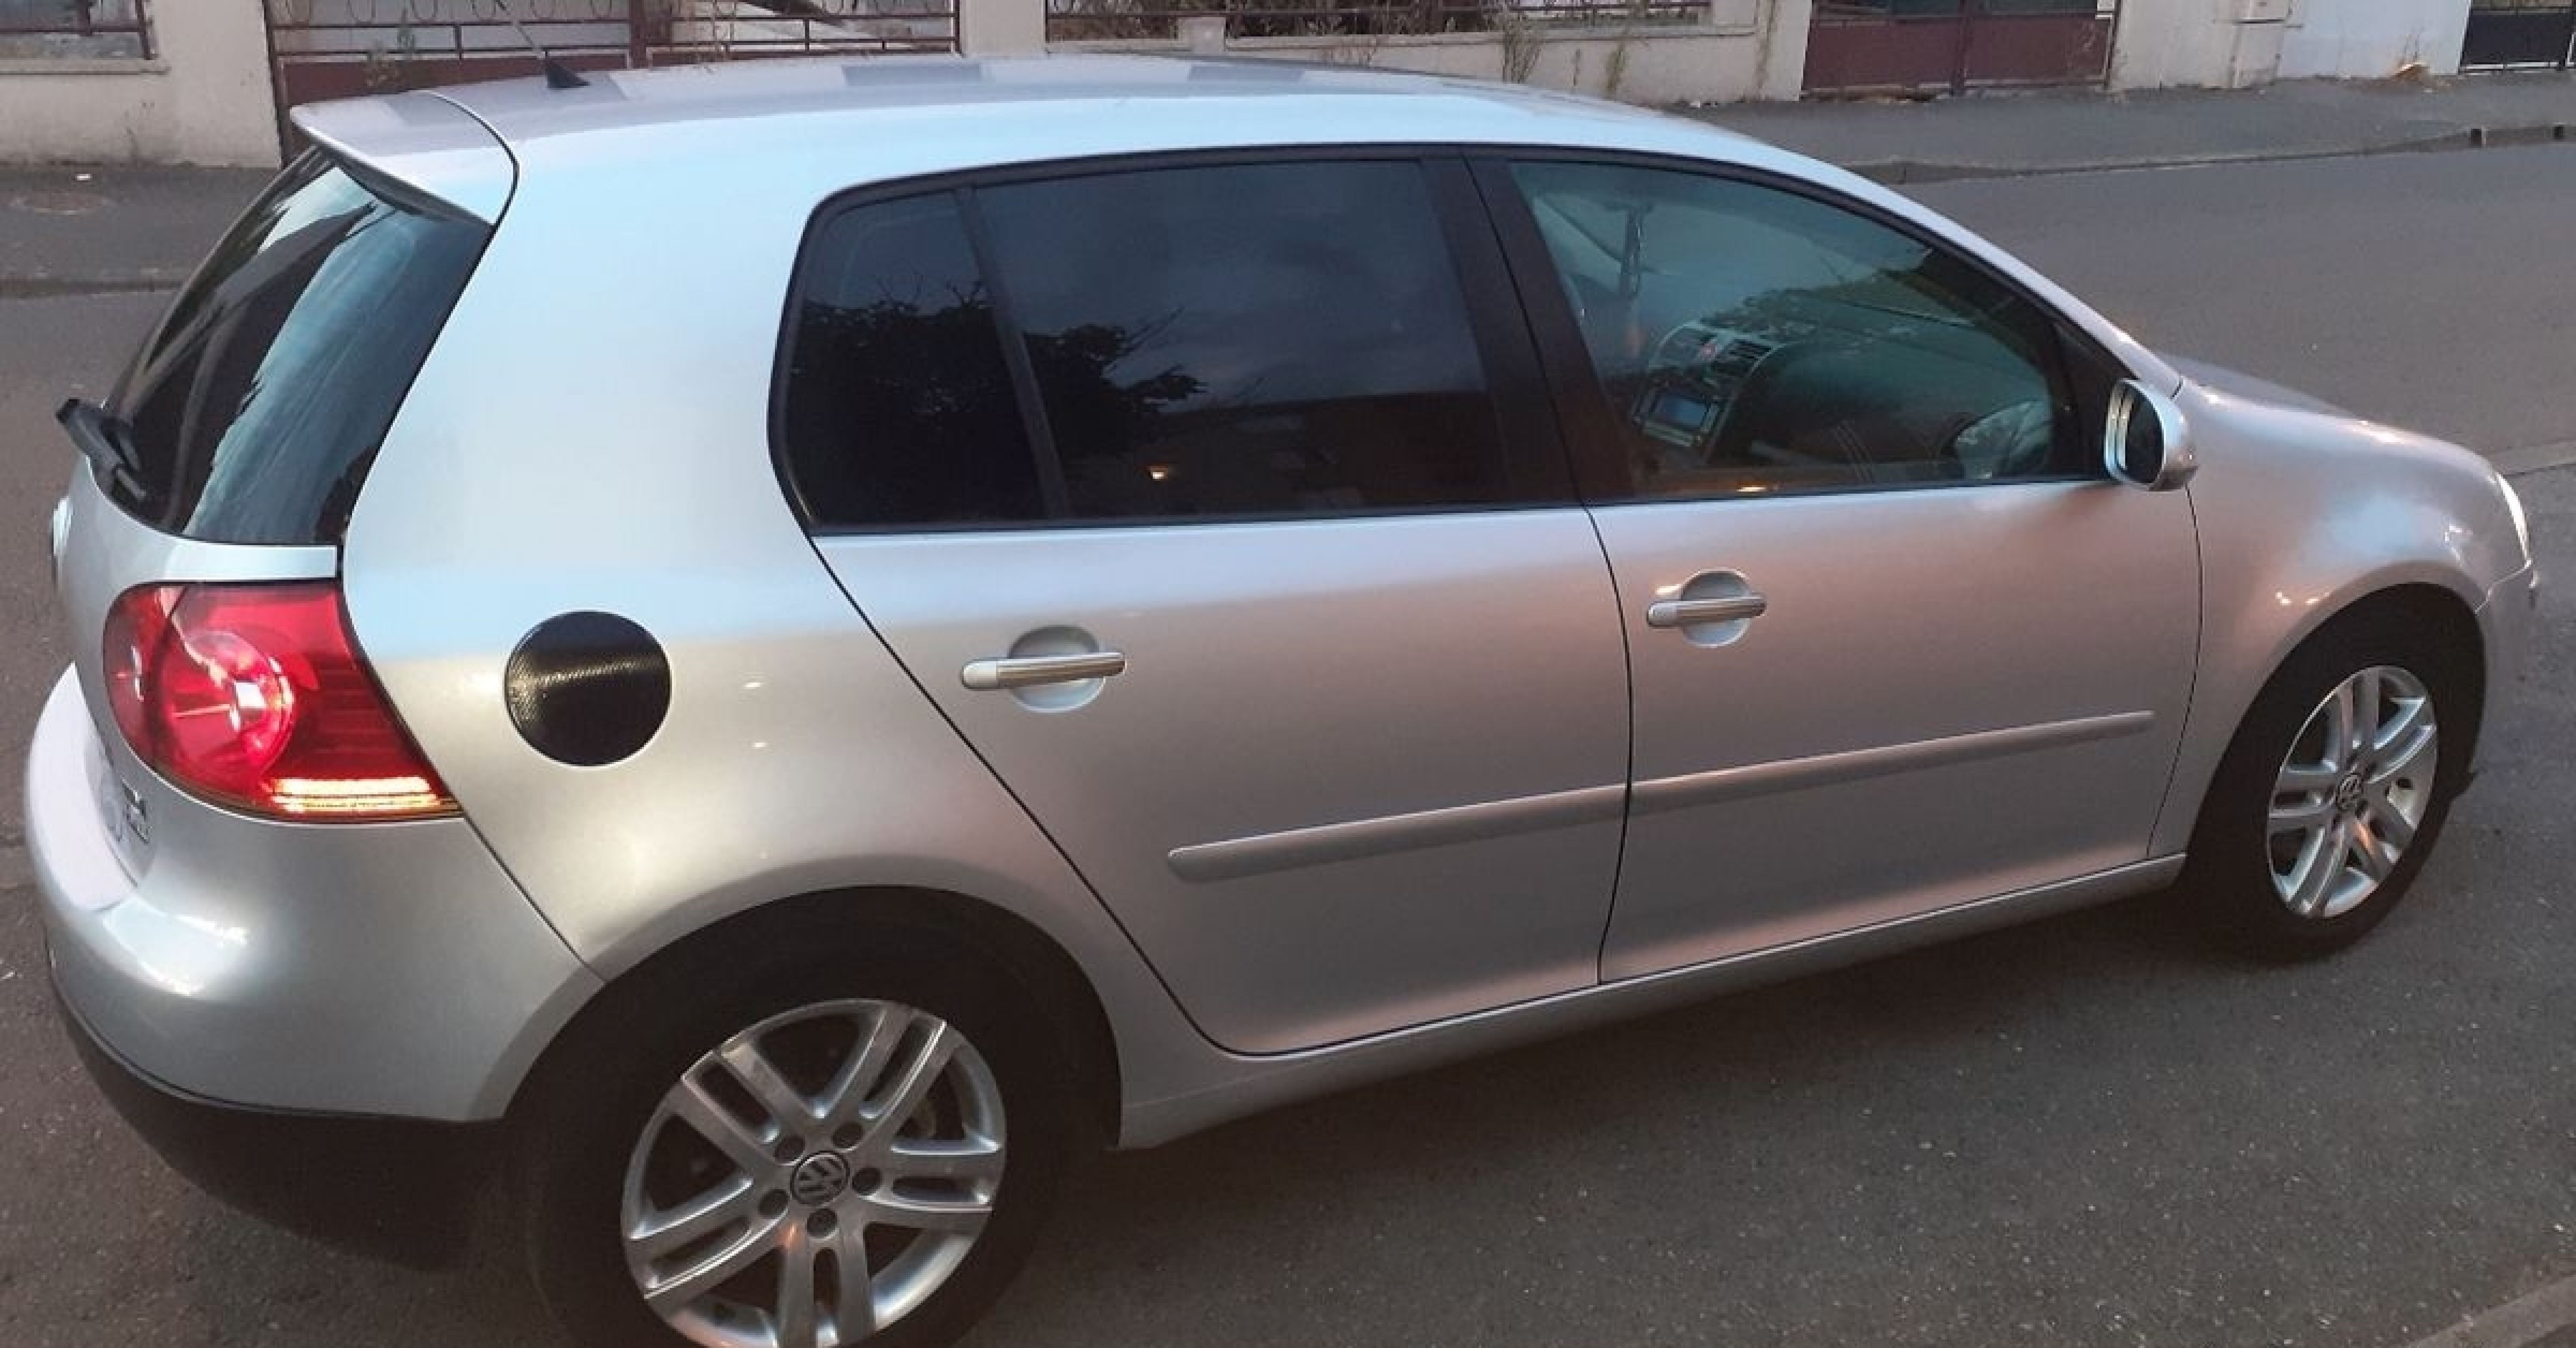 Golf 5 tdi 1.9l - Photo 2